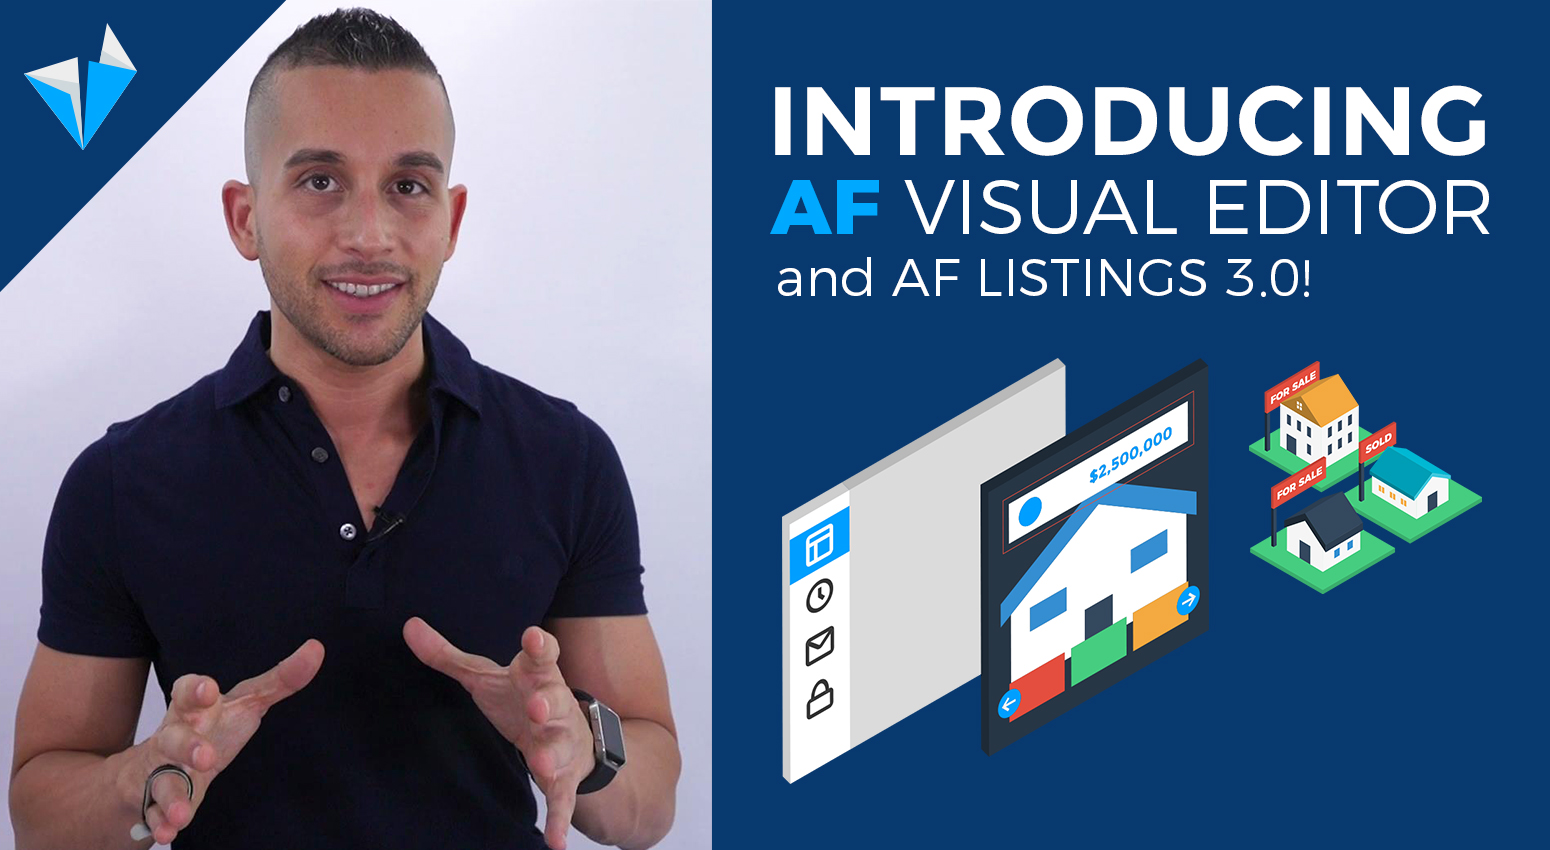 The New Era of AgentFire is Here: Introducing the AF Visual Editor (and AF Listings 3.0!)